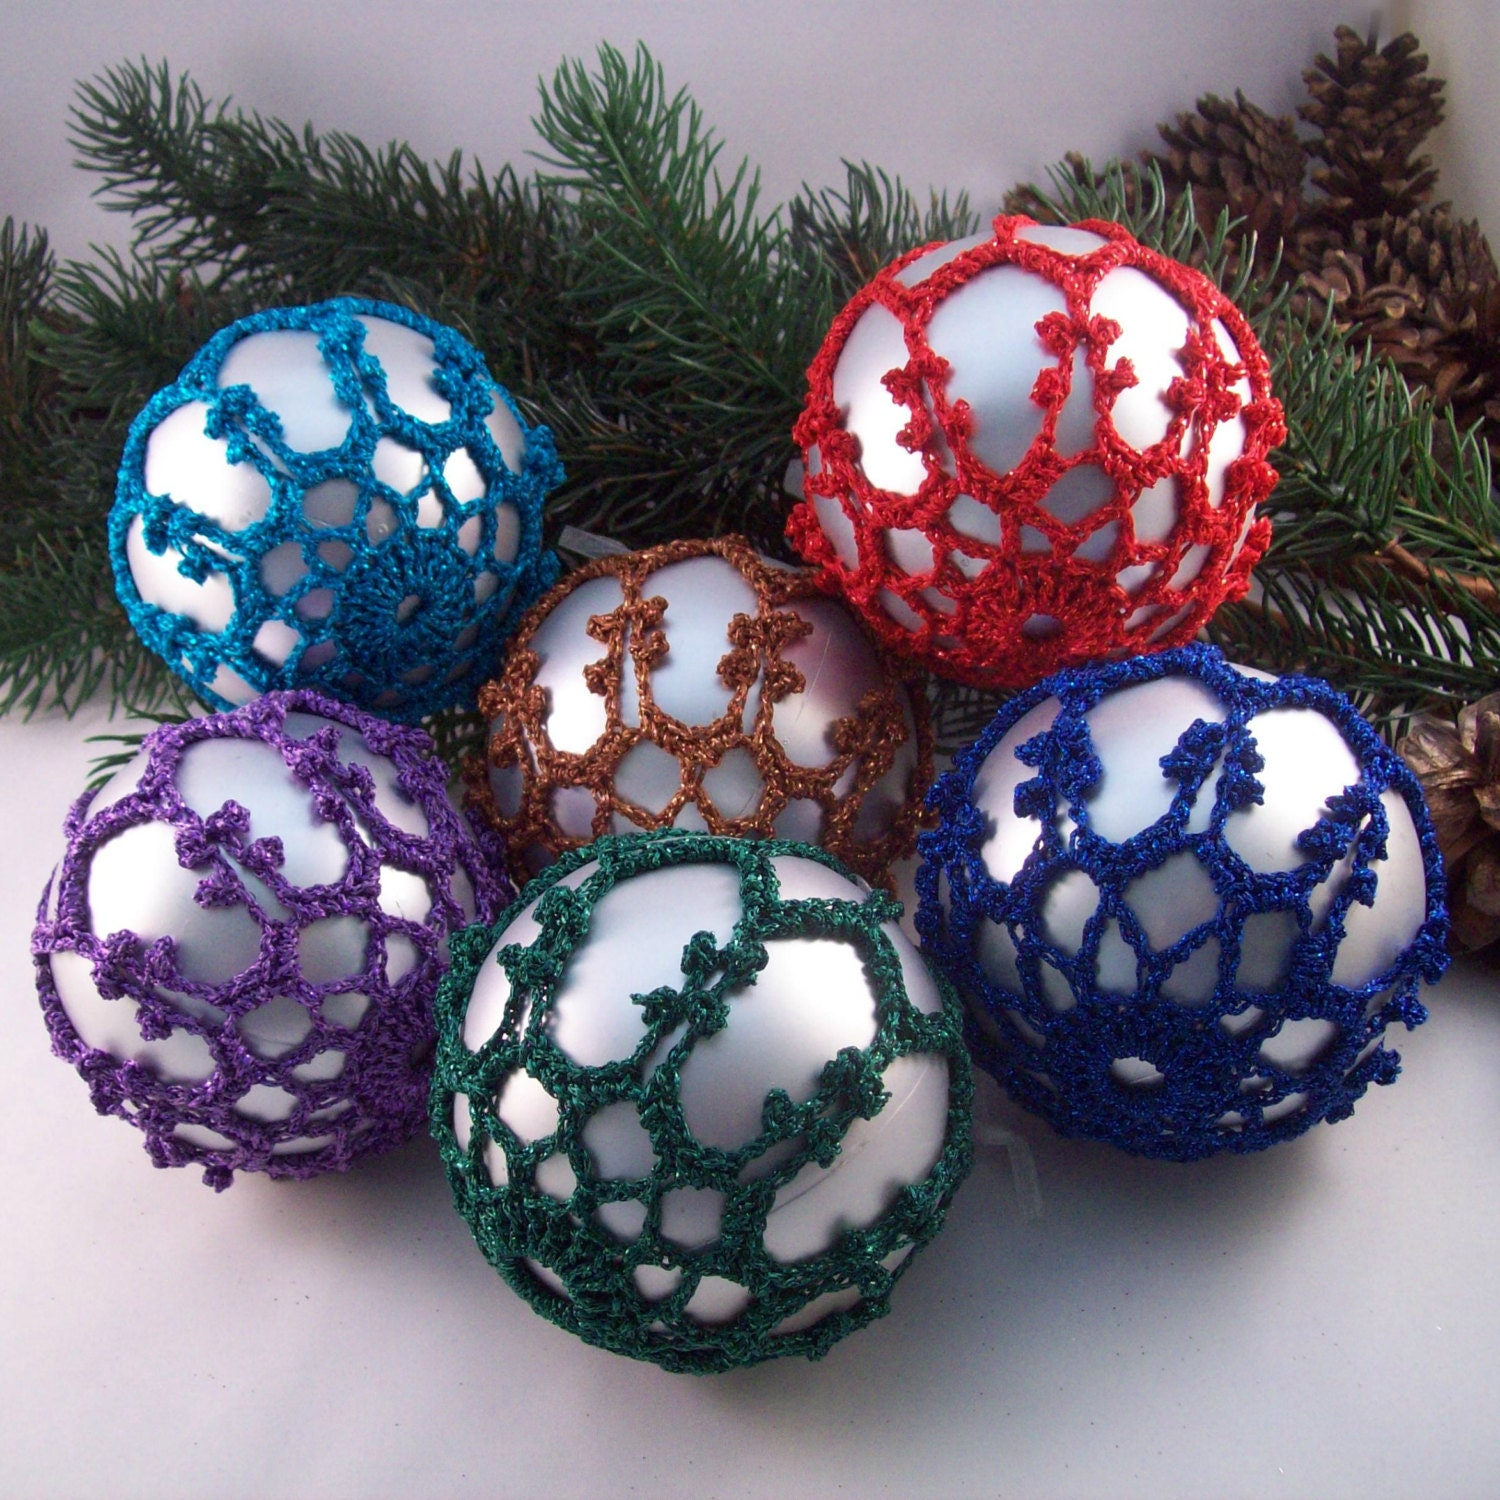 Silver Christmas baubles with bold colours Tree decorations Christmas decorations Christmas ornaments Holiday decorations Crochet lace